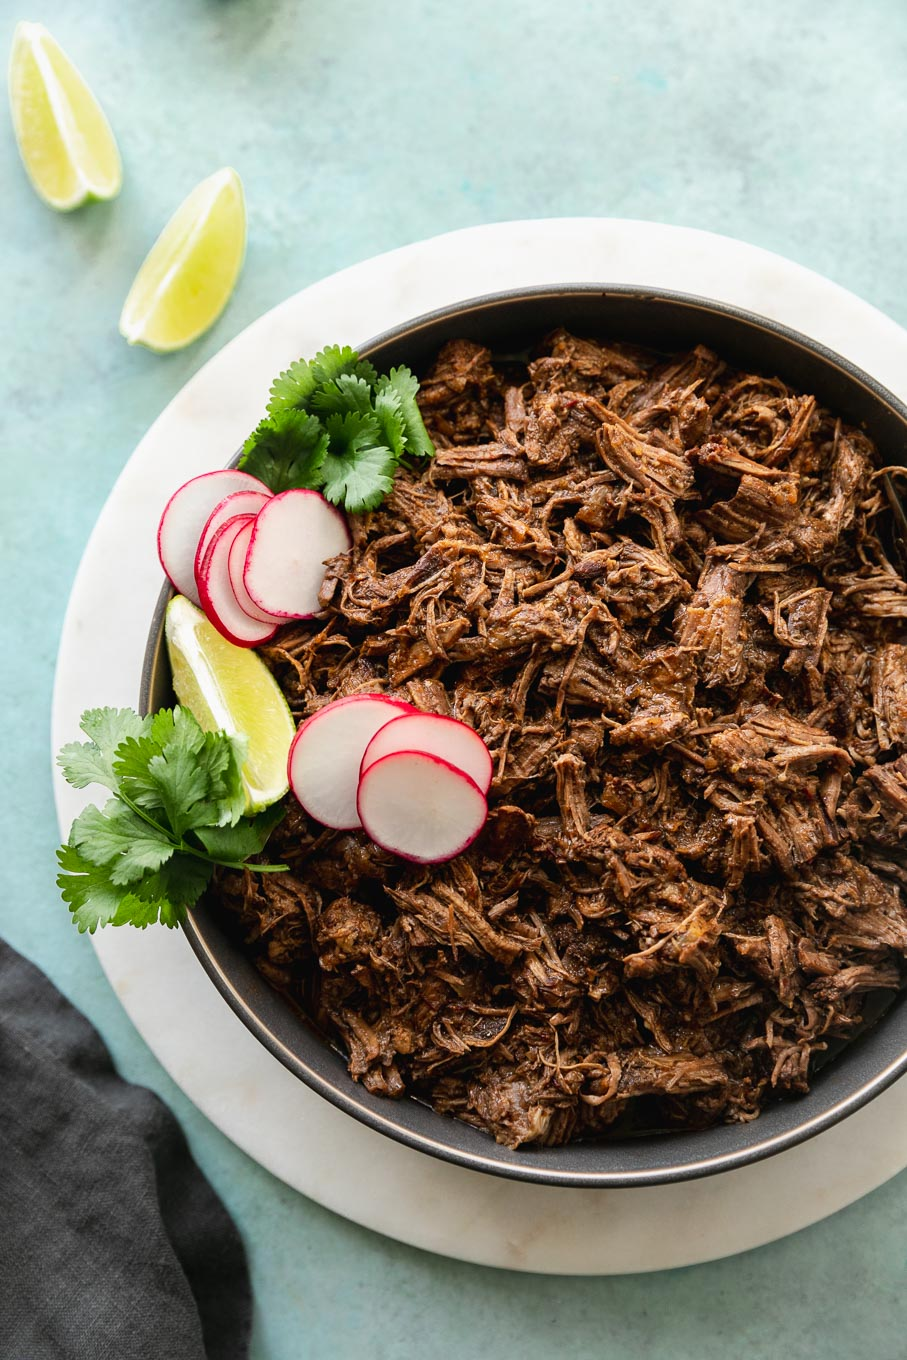 Overhead close up shot of a bowl of shredded barbacoa beef garnished with a lime wedge, cilantro, and sliced radishes